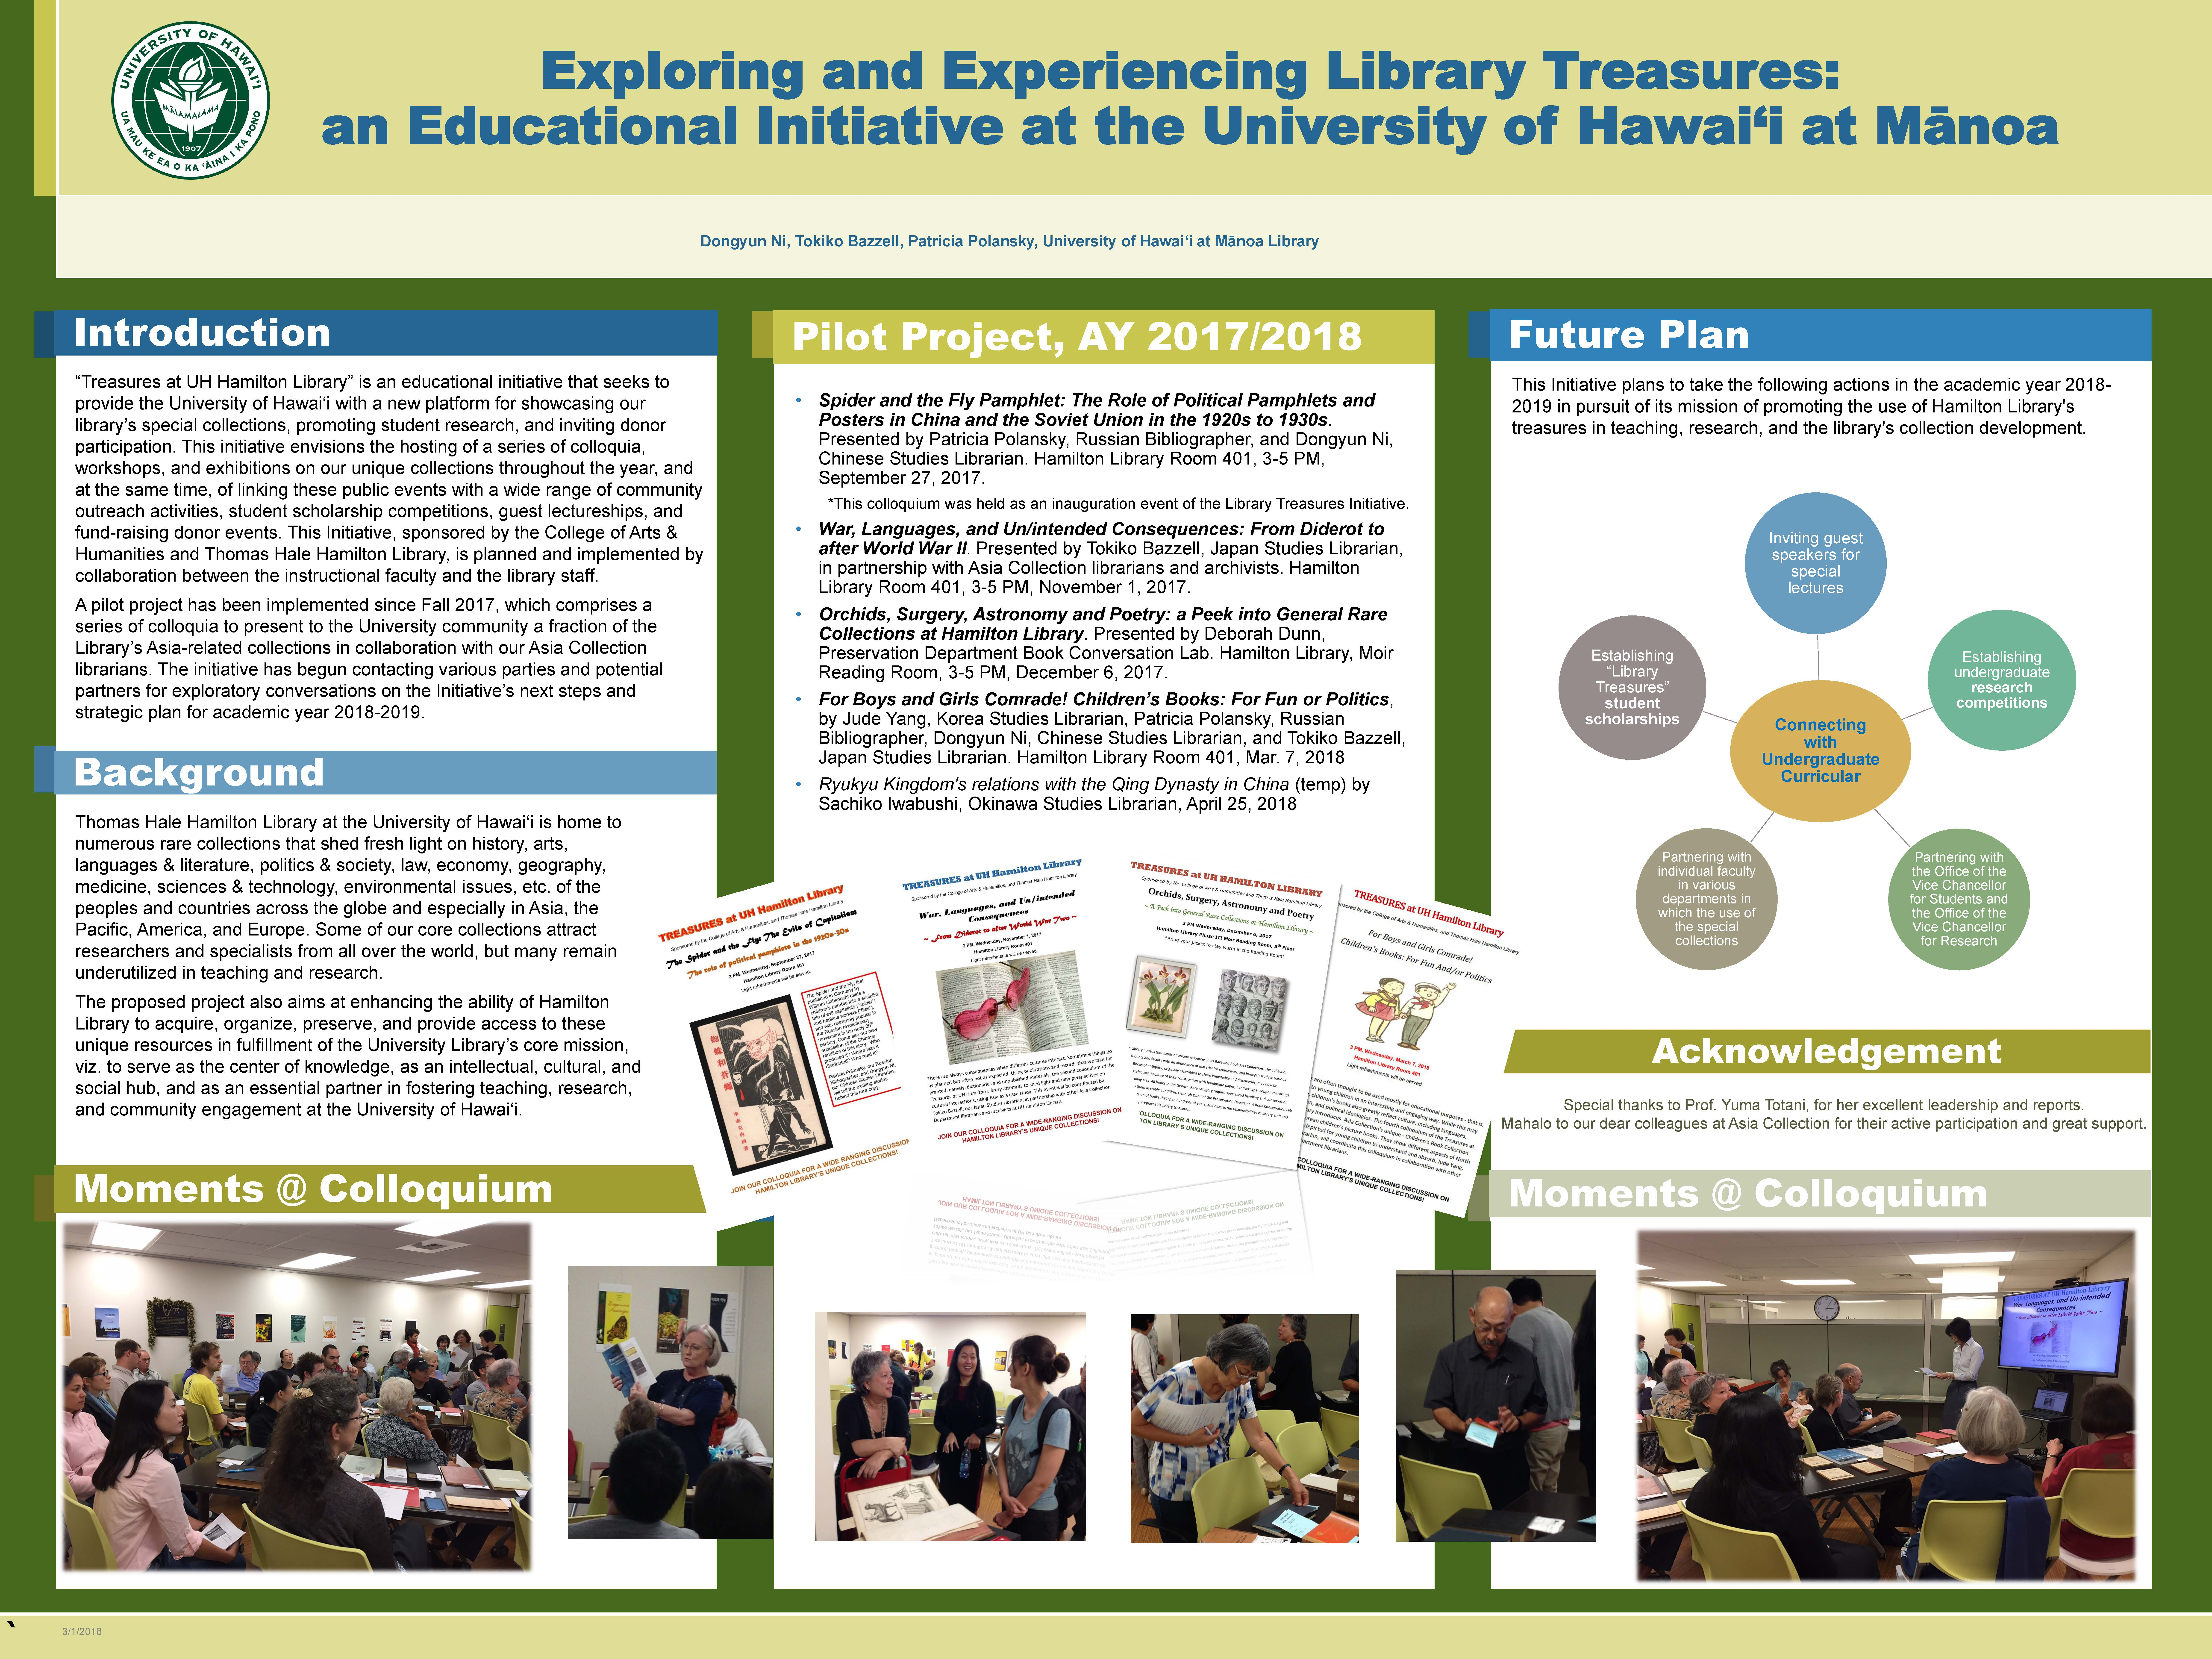 Exploring and Experiencing Library Treasures poster by Dongyun Ni, Tokiko Bazzell, and Patricia Polansky, University of Hawaii at Manoa Library